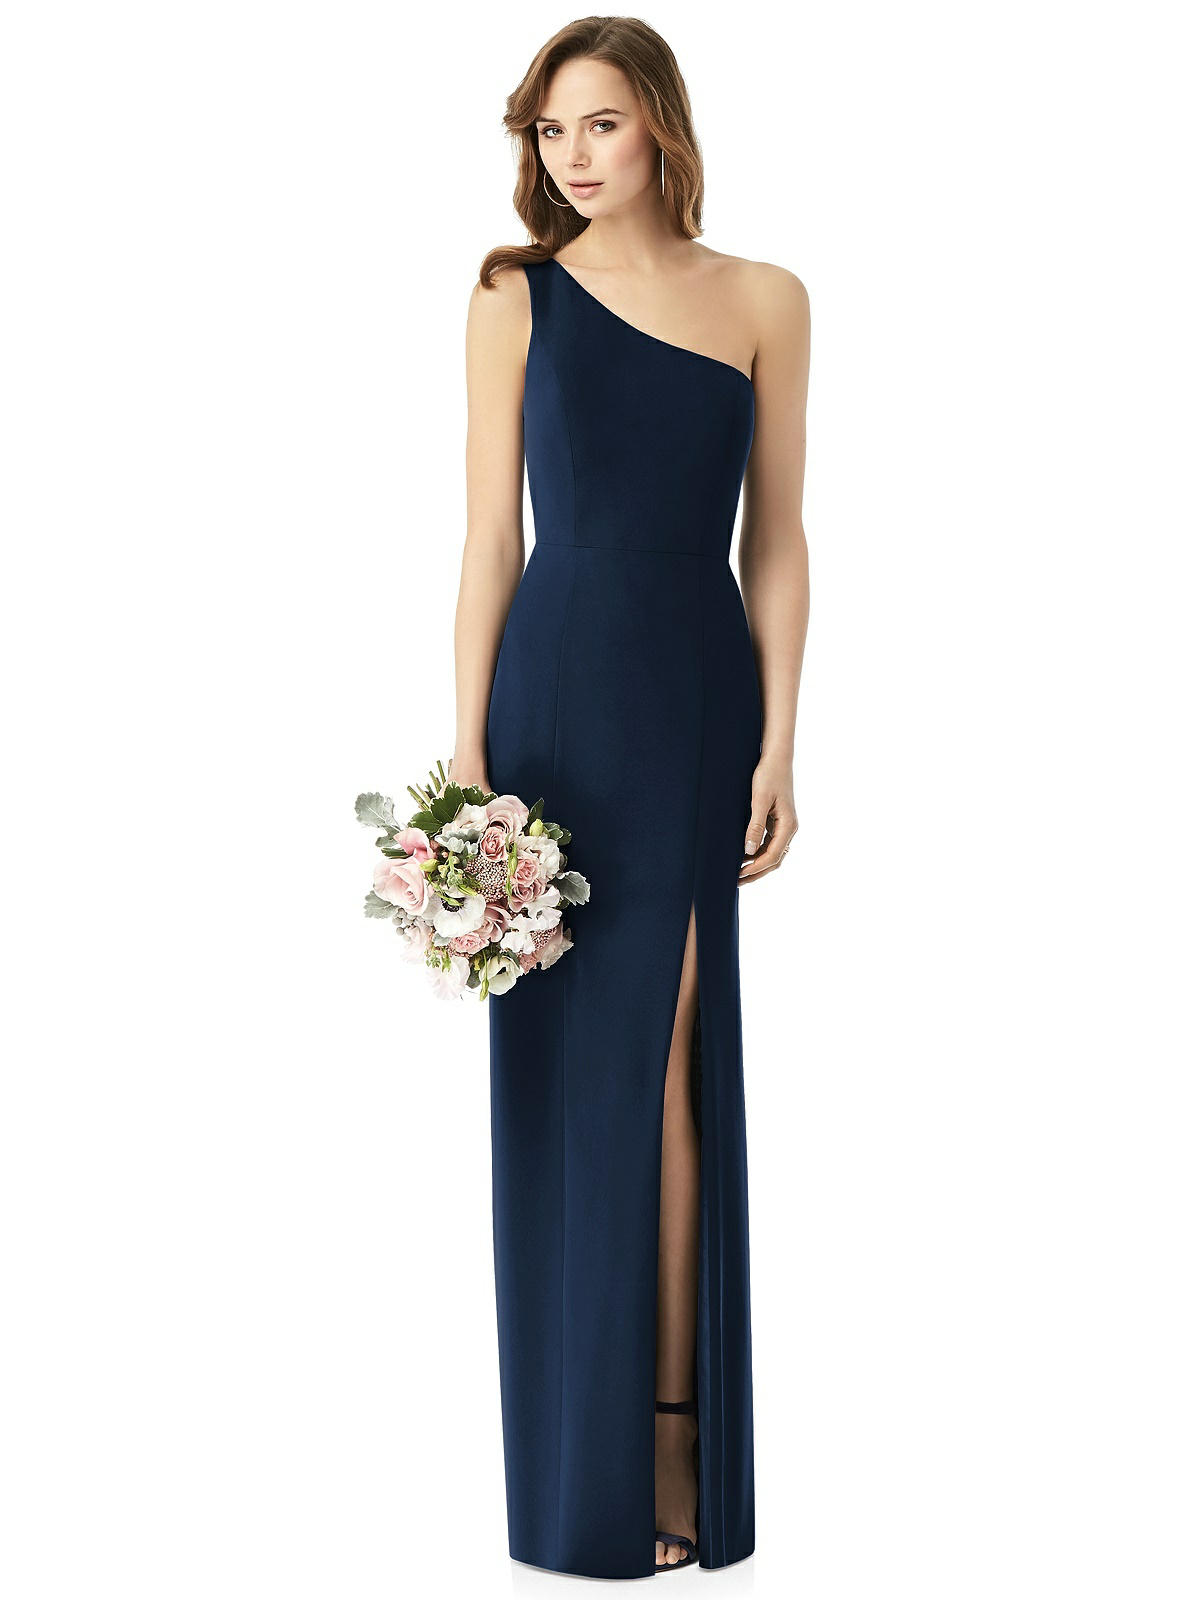 fall wedding bridesmaid dress blue